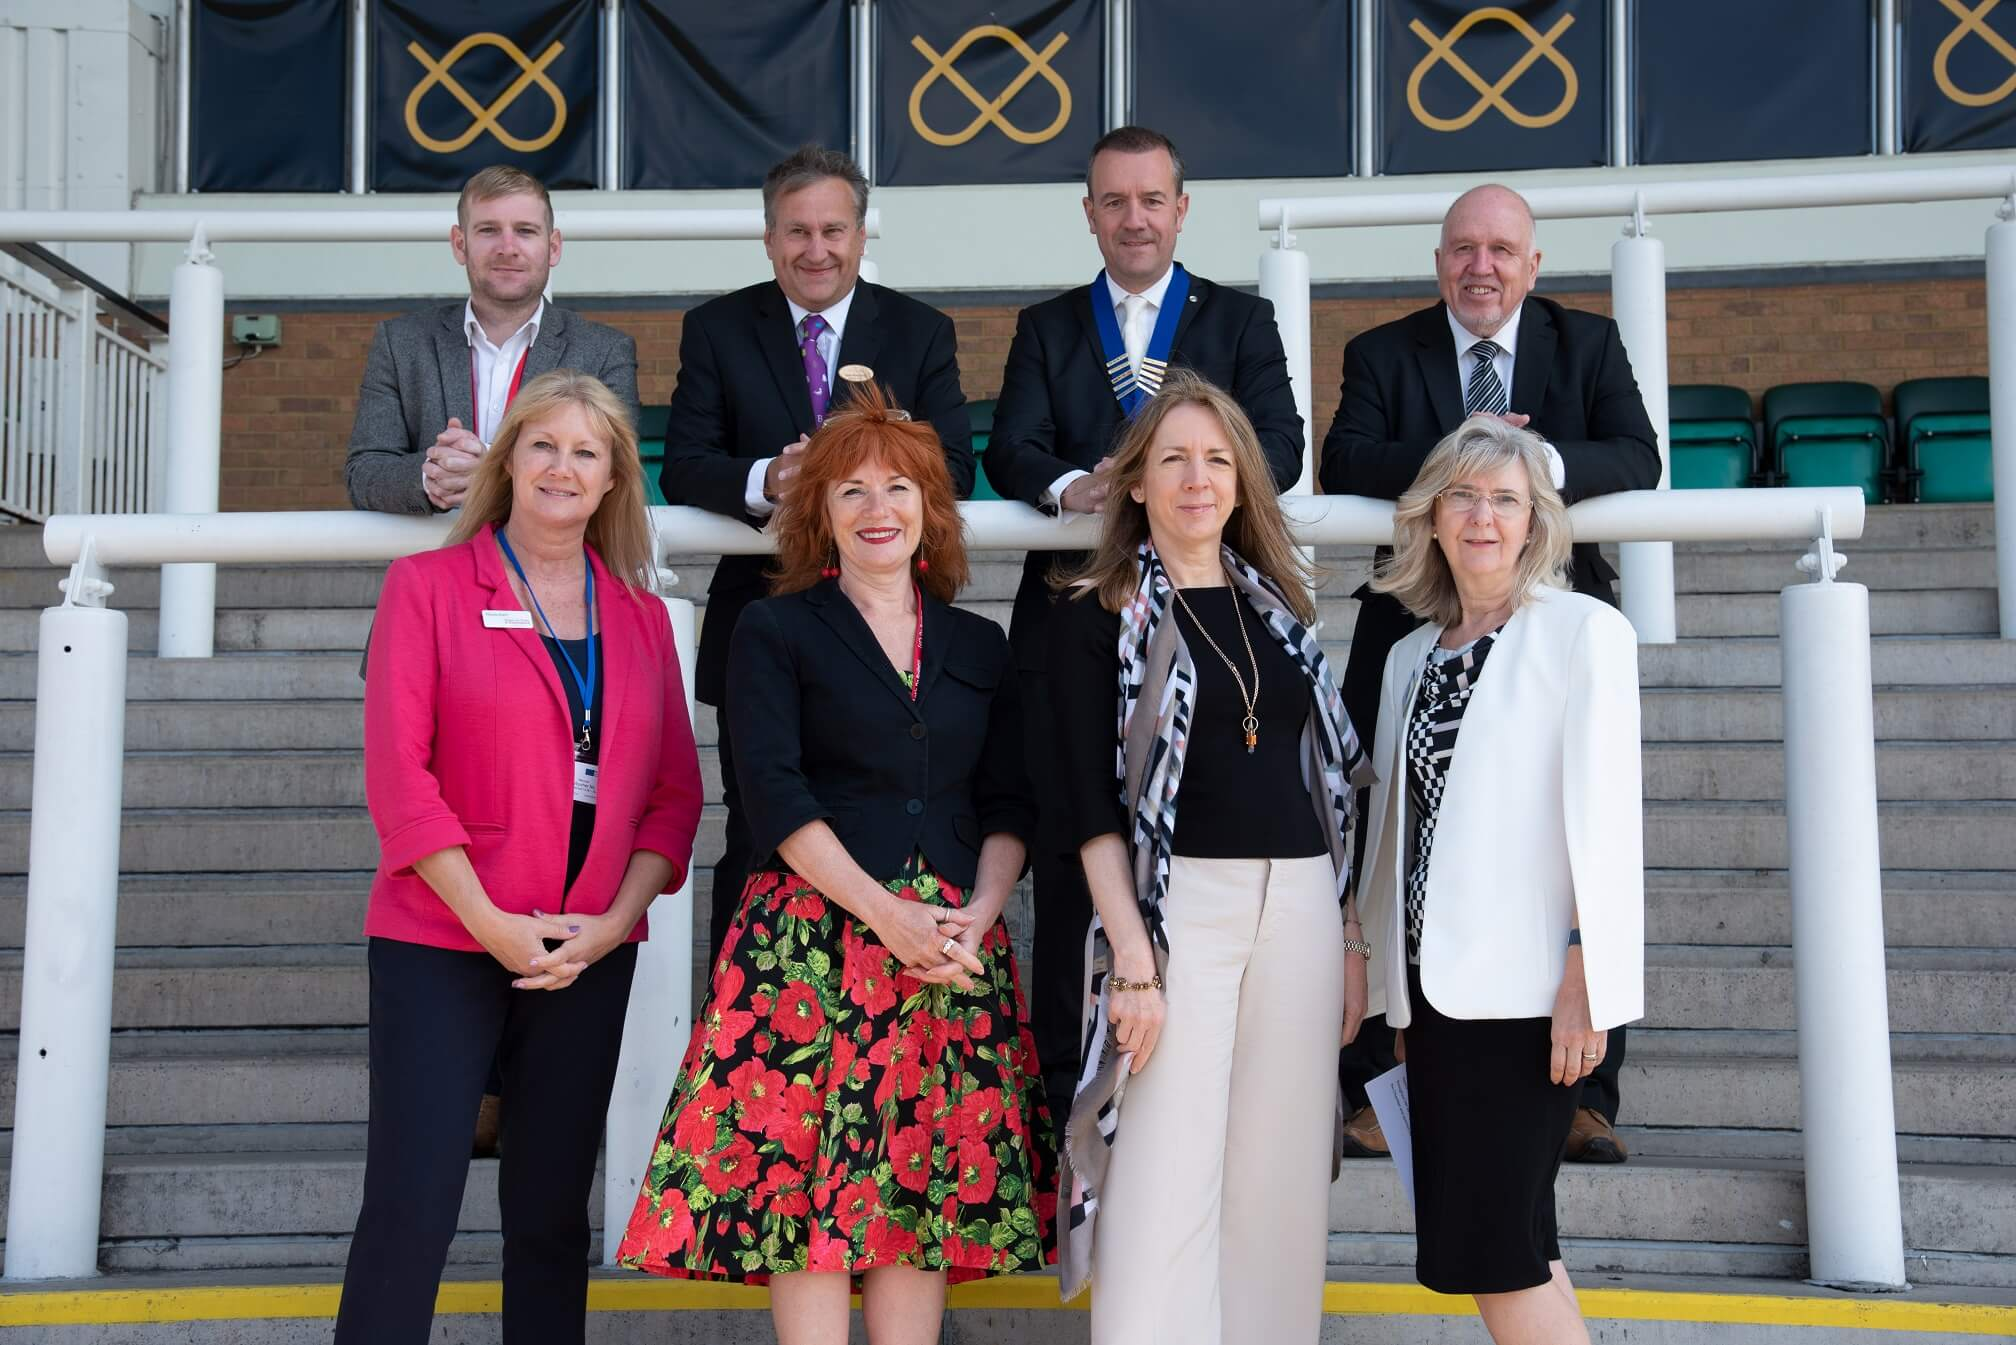 Four men and four woman standing on steps at Uttoxeter Racecourse at Let's Do Business event